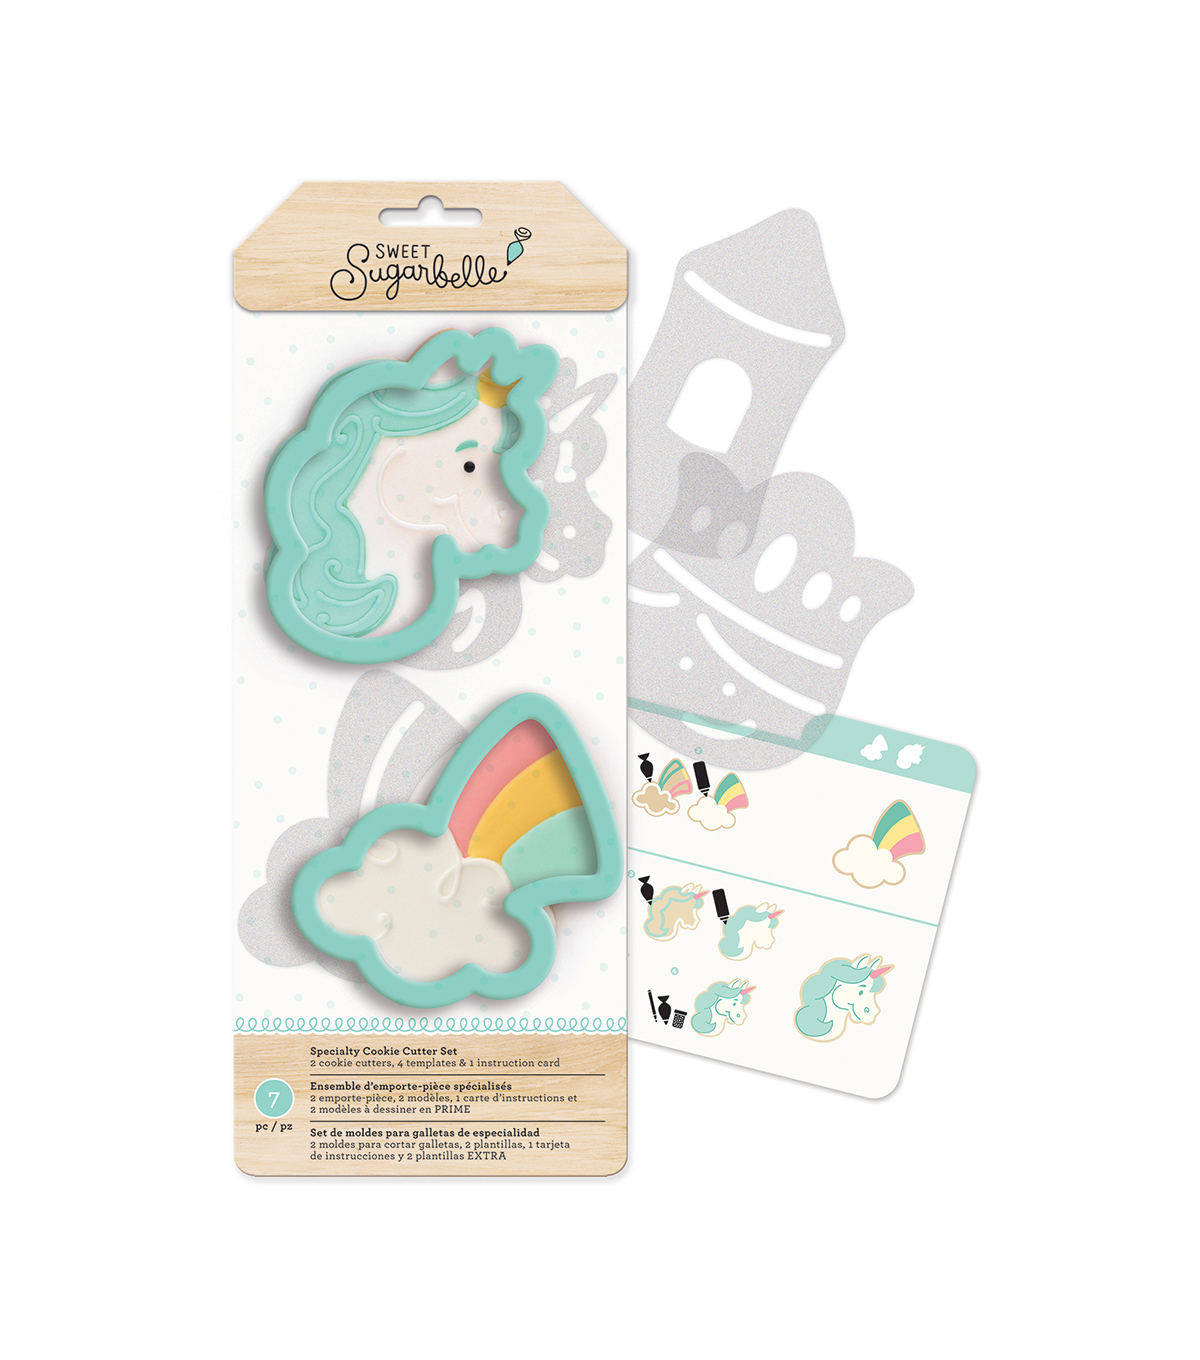 Sweet Sugarbelle Cookie Cutters Enchanted